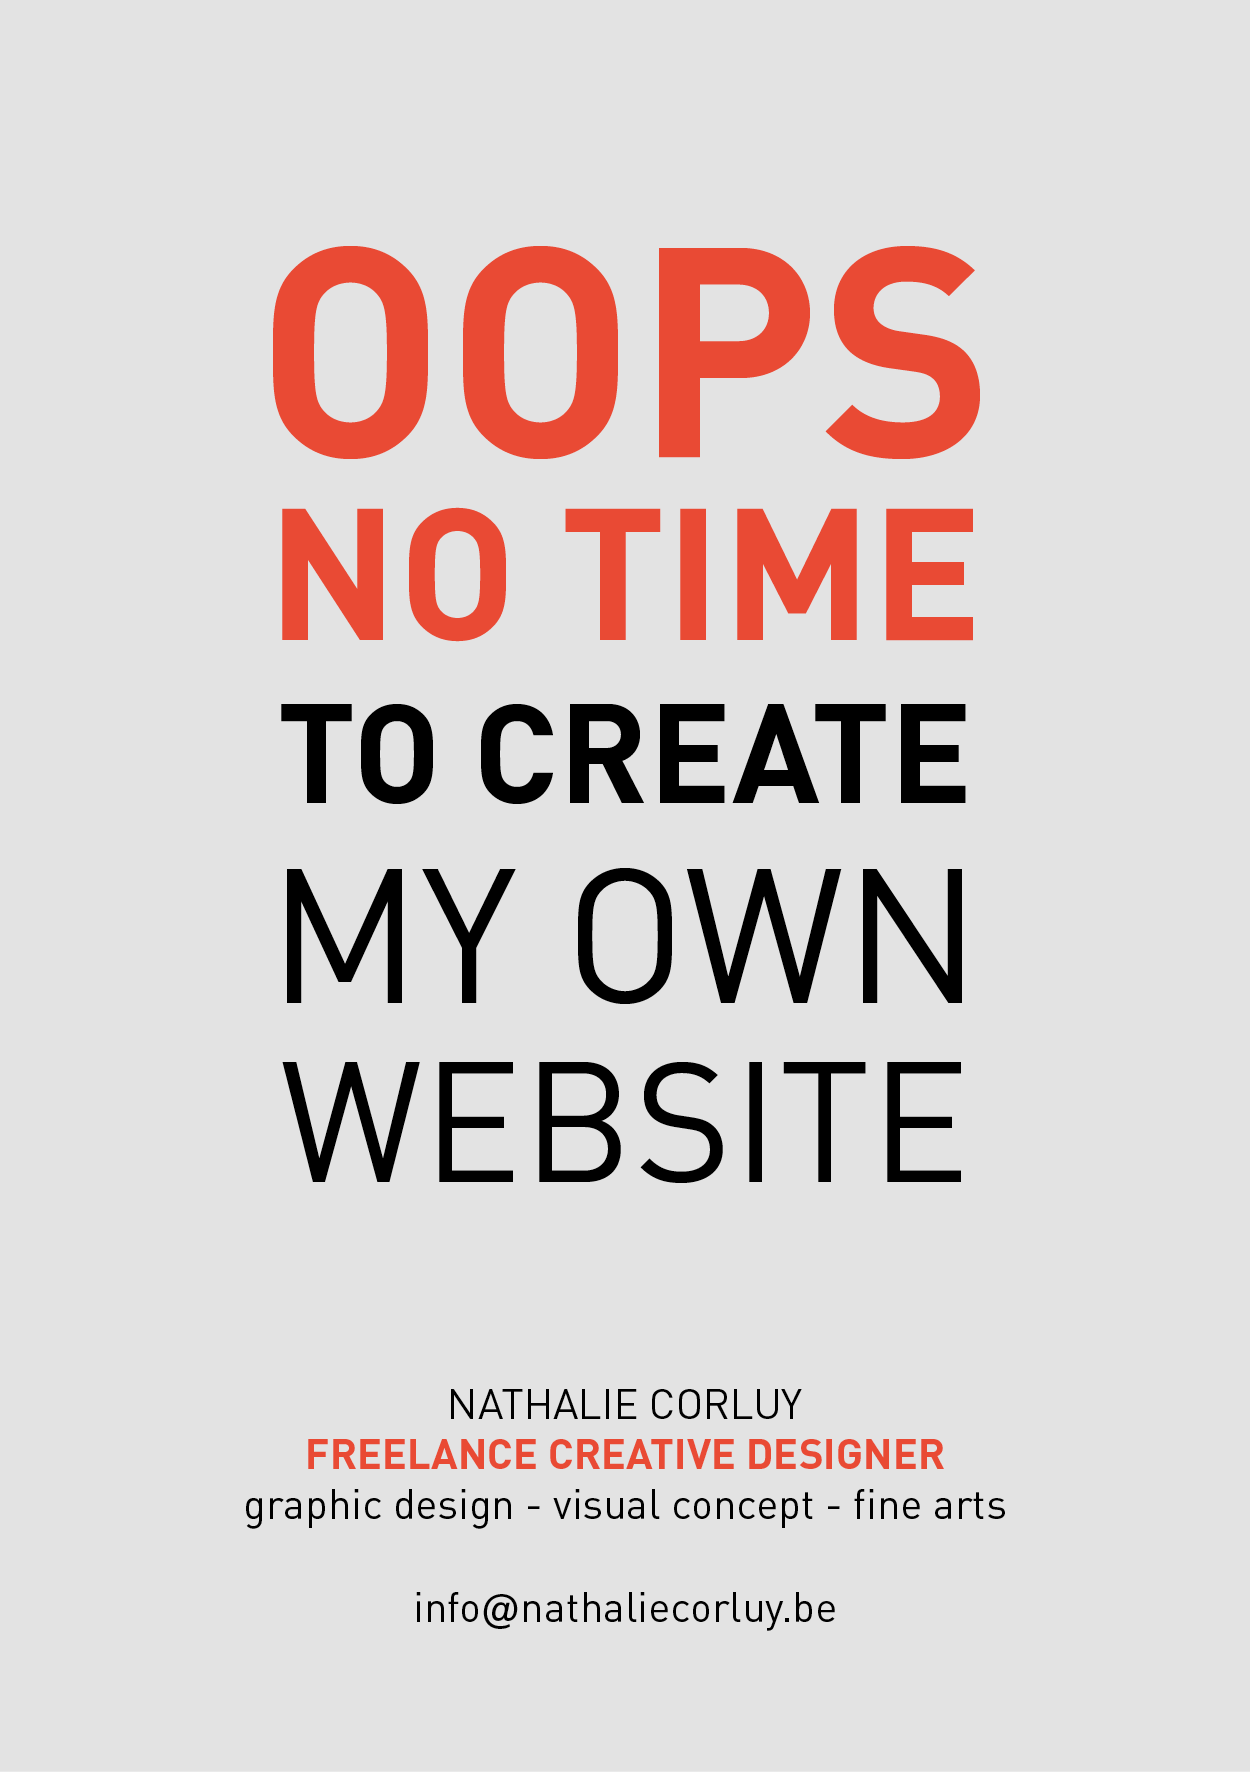 Nathalie Corluy - Freelance Designer  - Website under construction